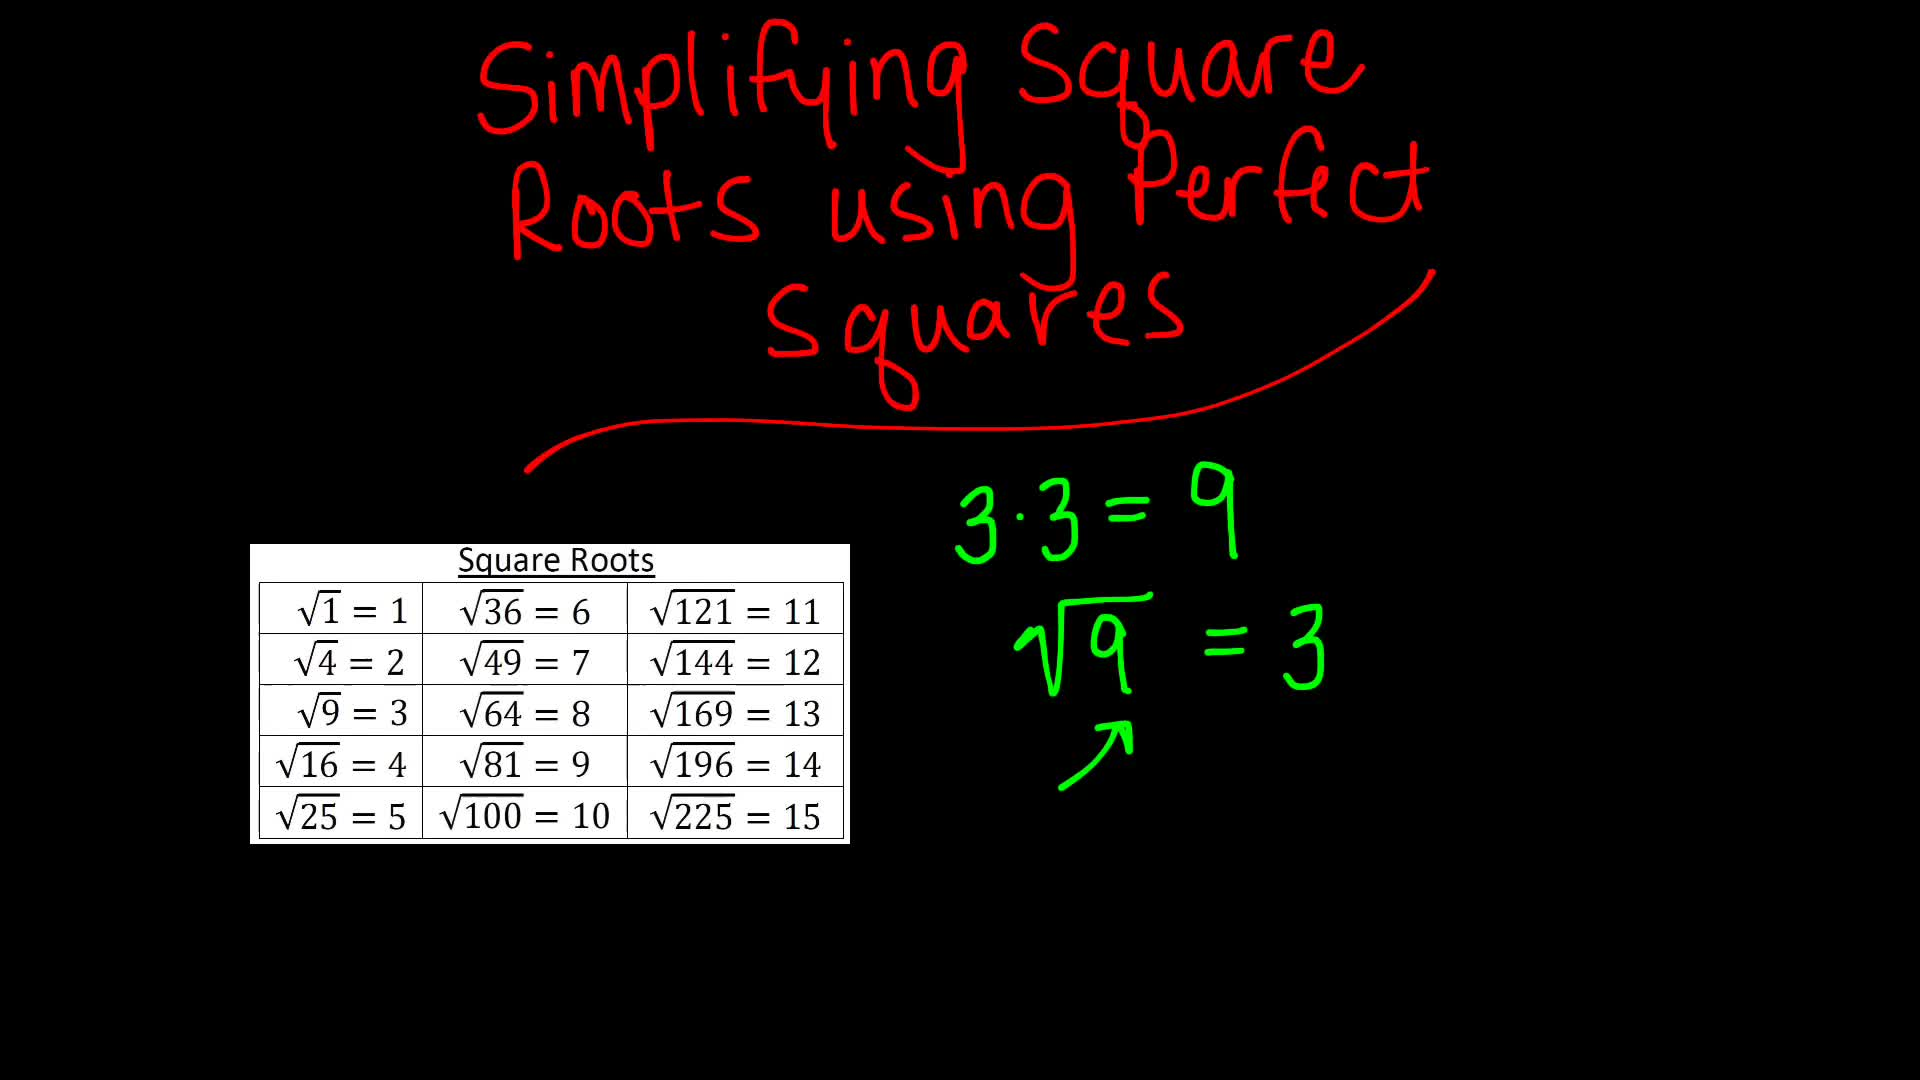 Simplifying Square Roots with Perfect Squares